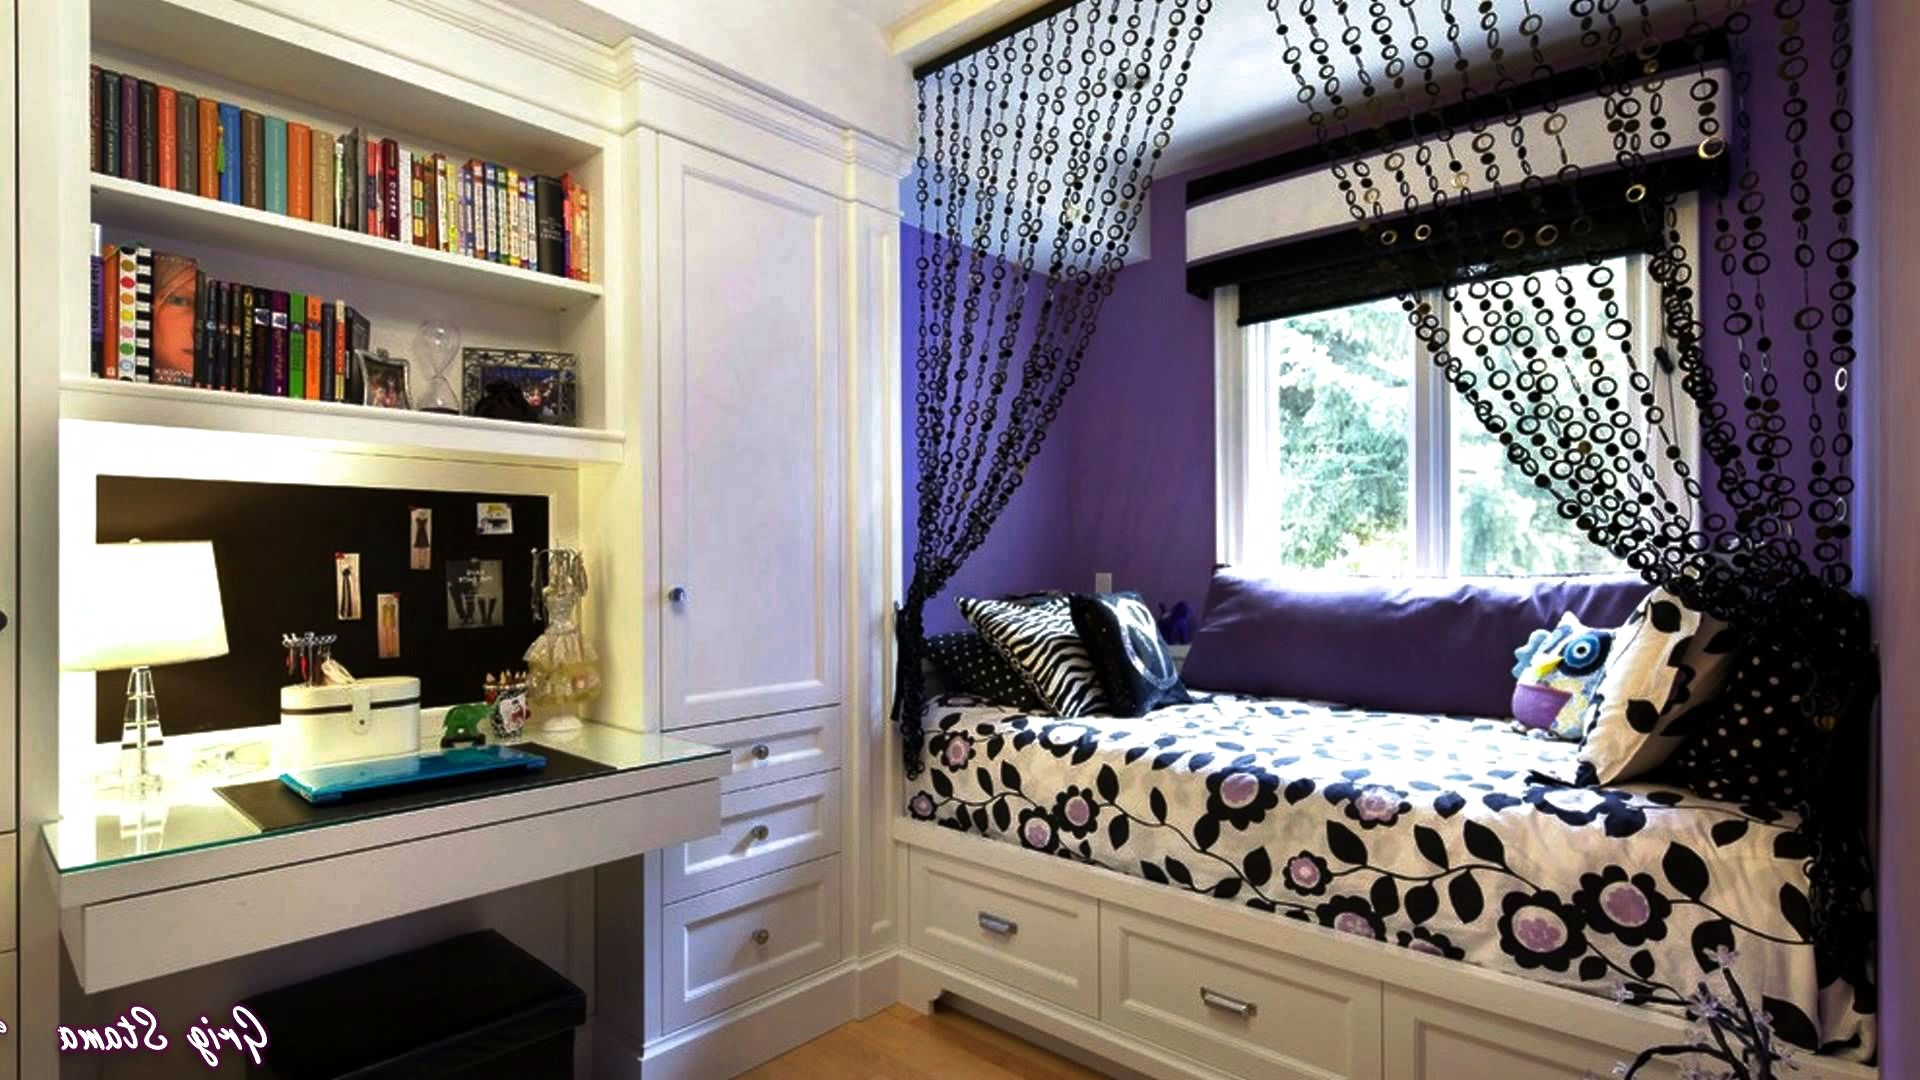 rooms decor ... furniture:room decor ideas charming room decor ideas 2 pretty tween YZFDCHP